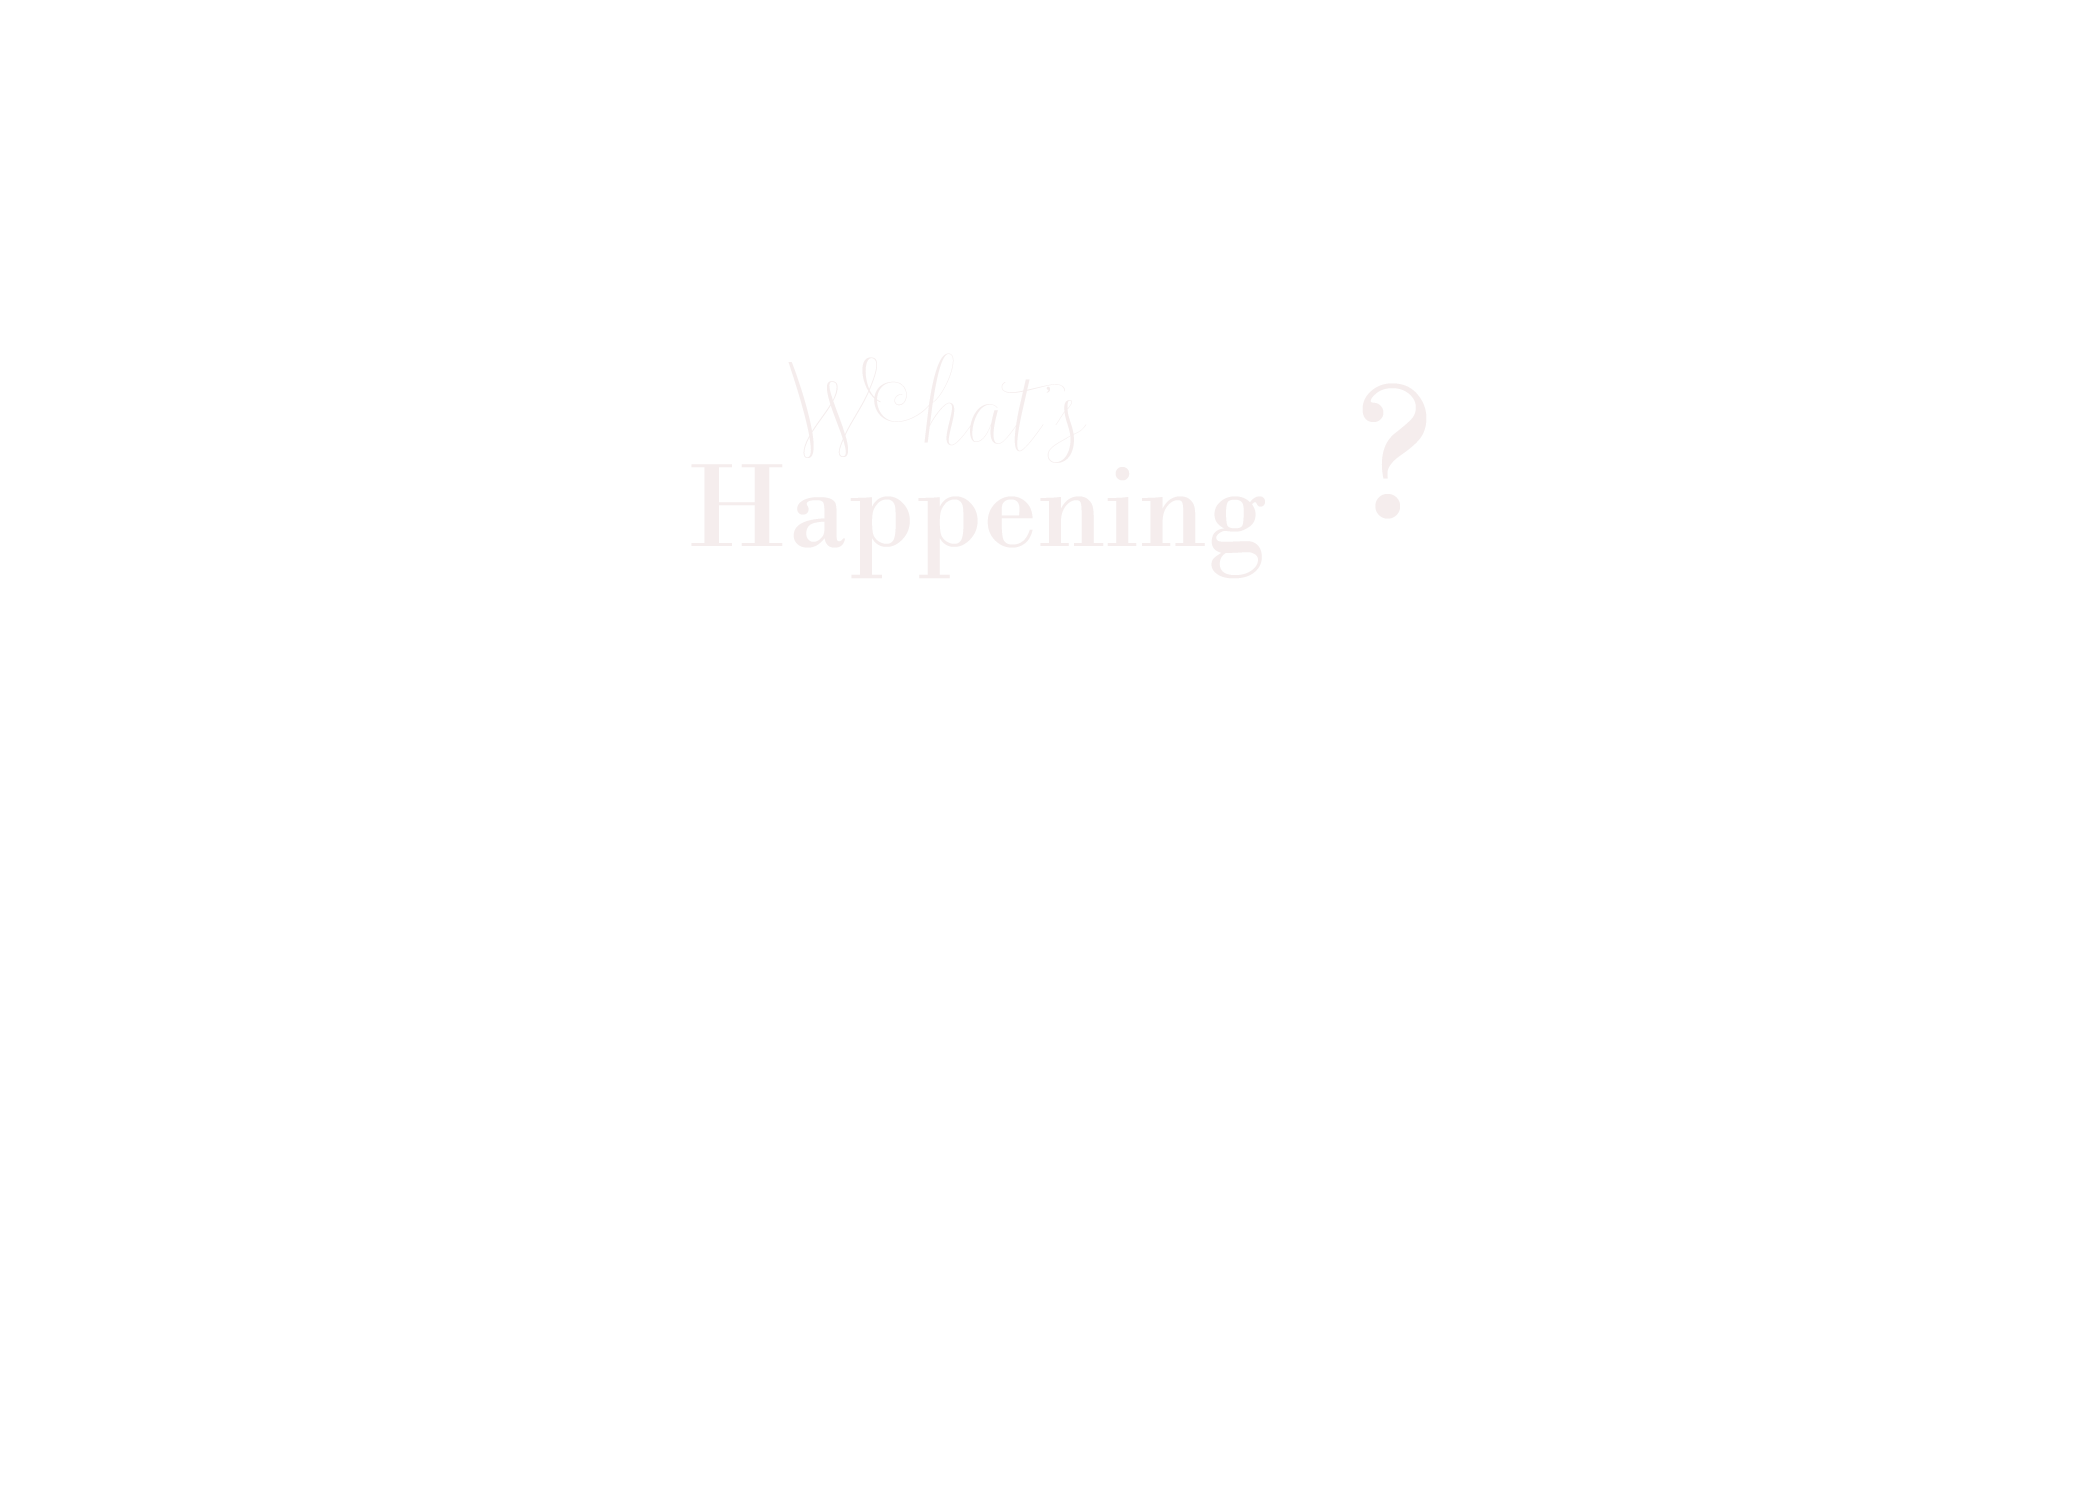 What's happening?